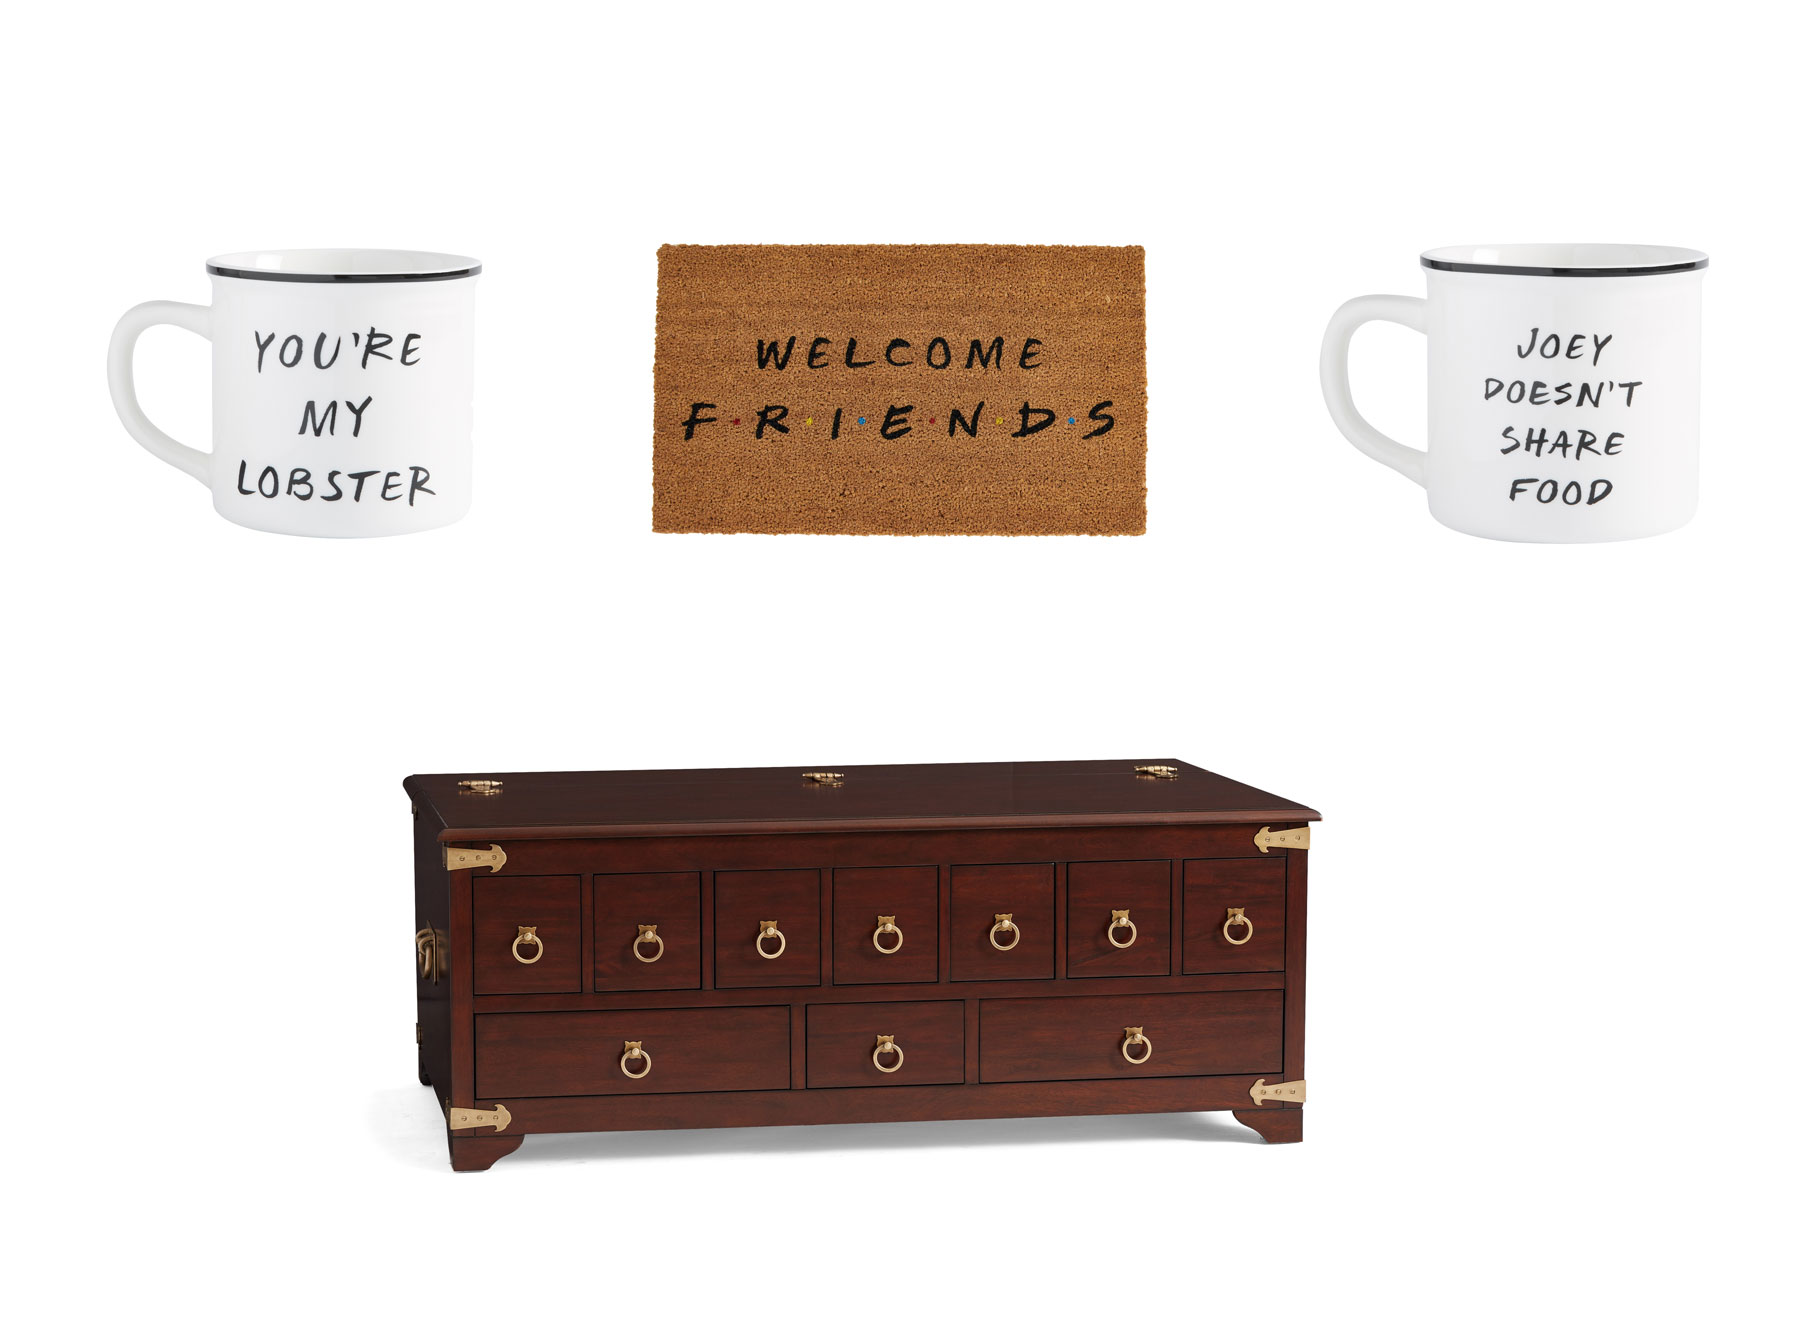 Pottery Barn Apothecary Table from Friends - collection with doormat and mugs